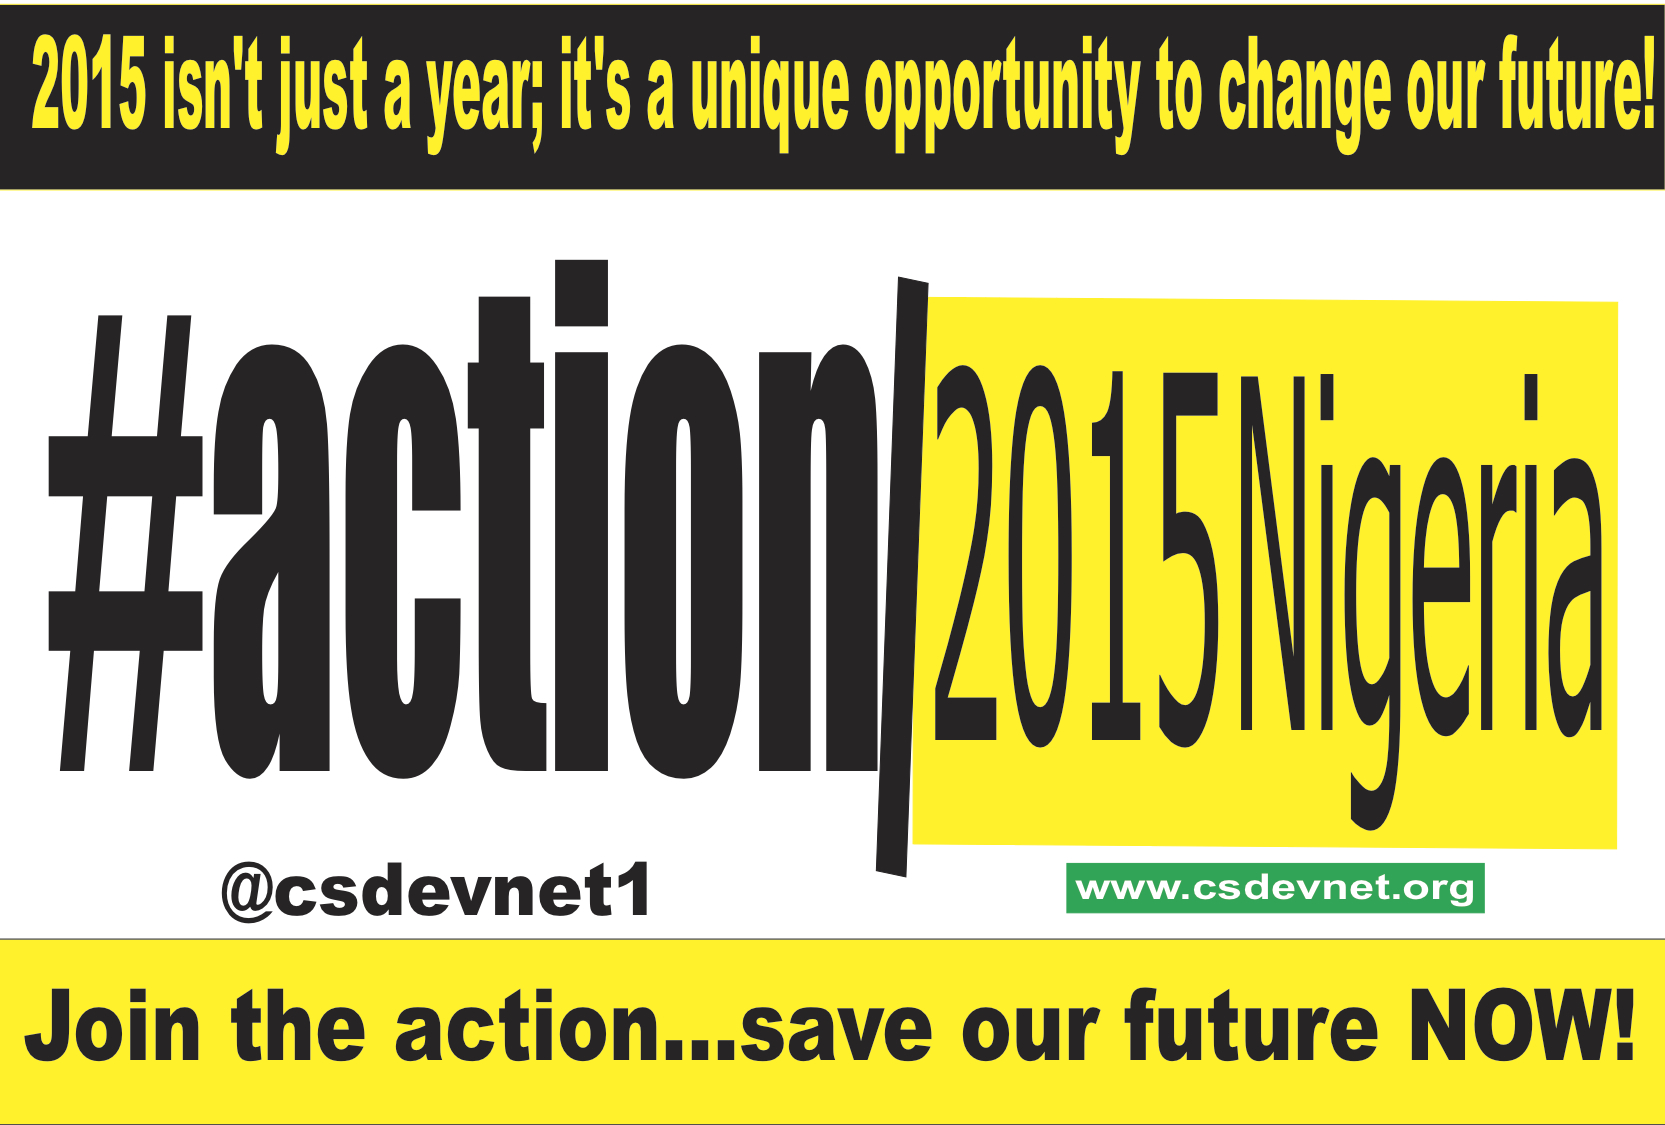 action2015 3